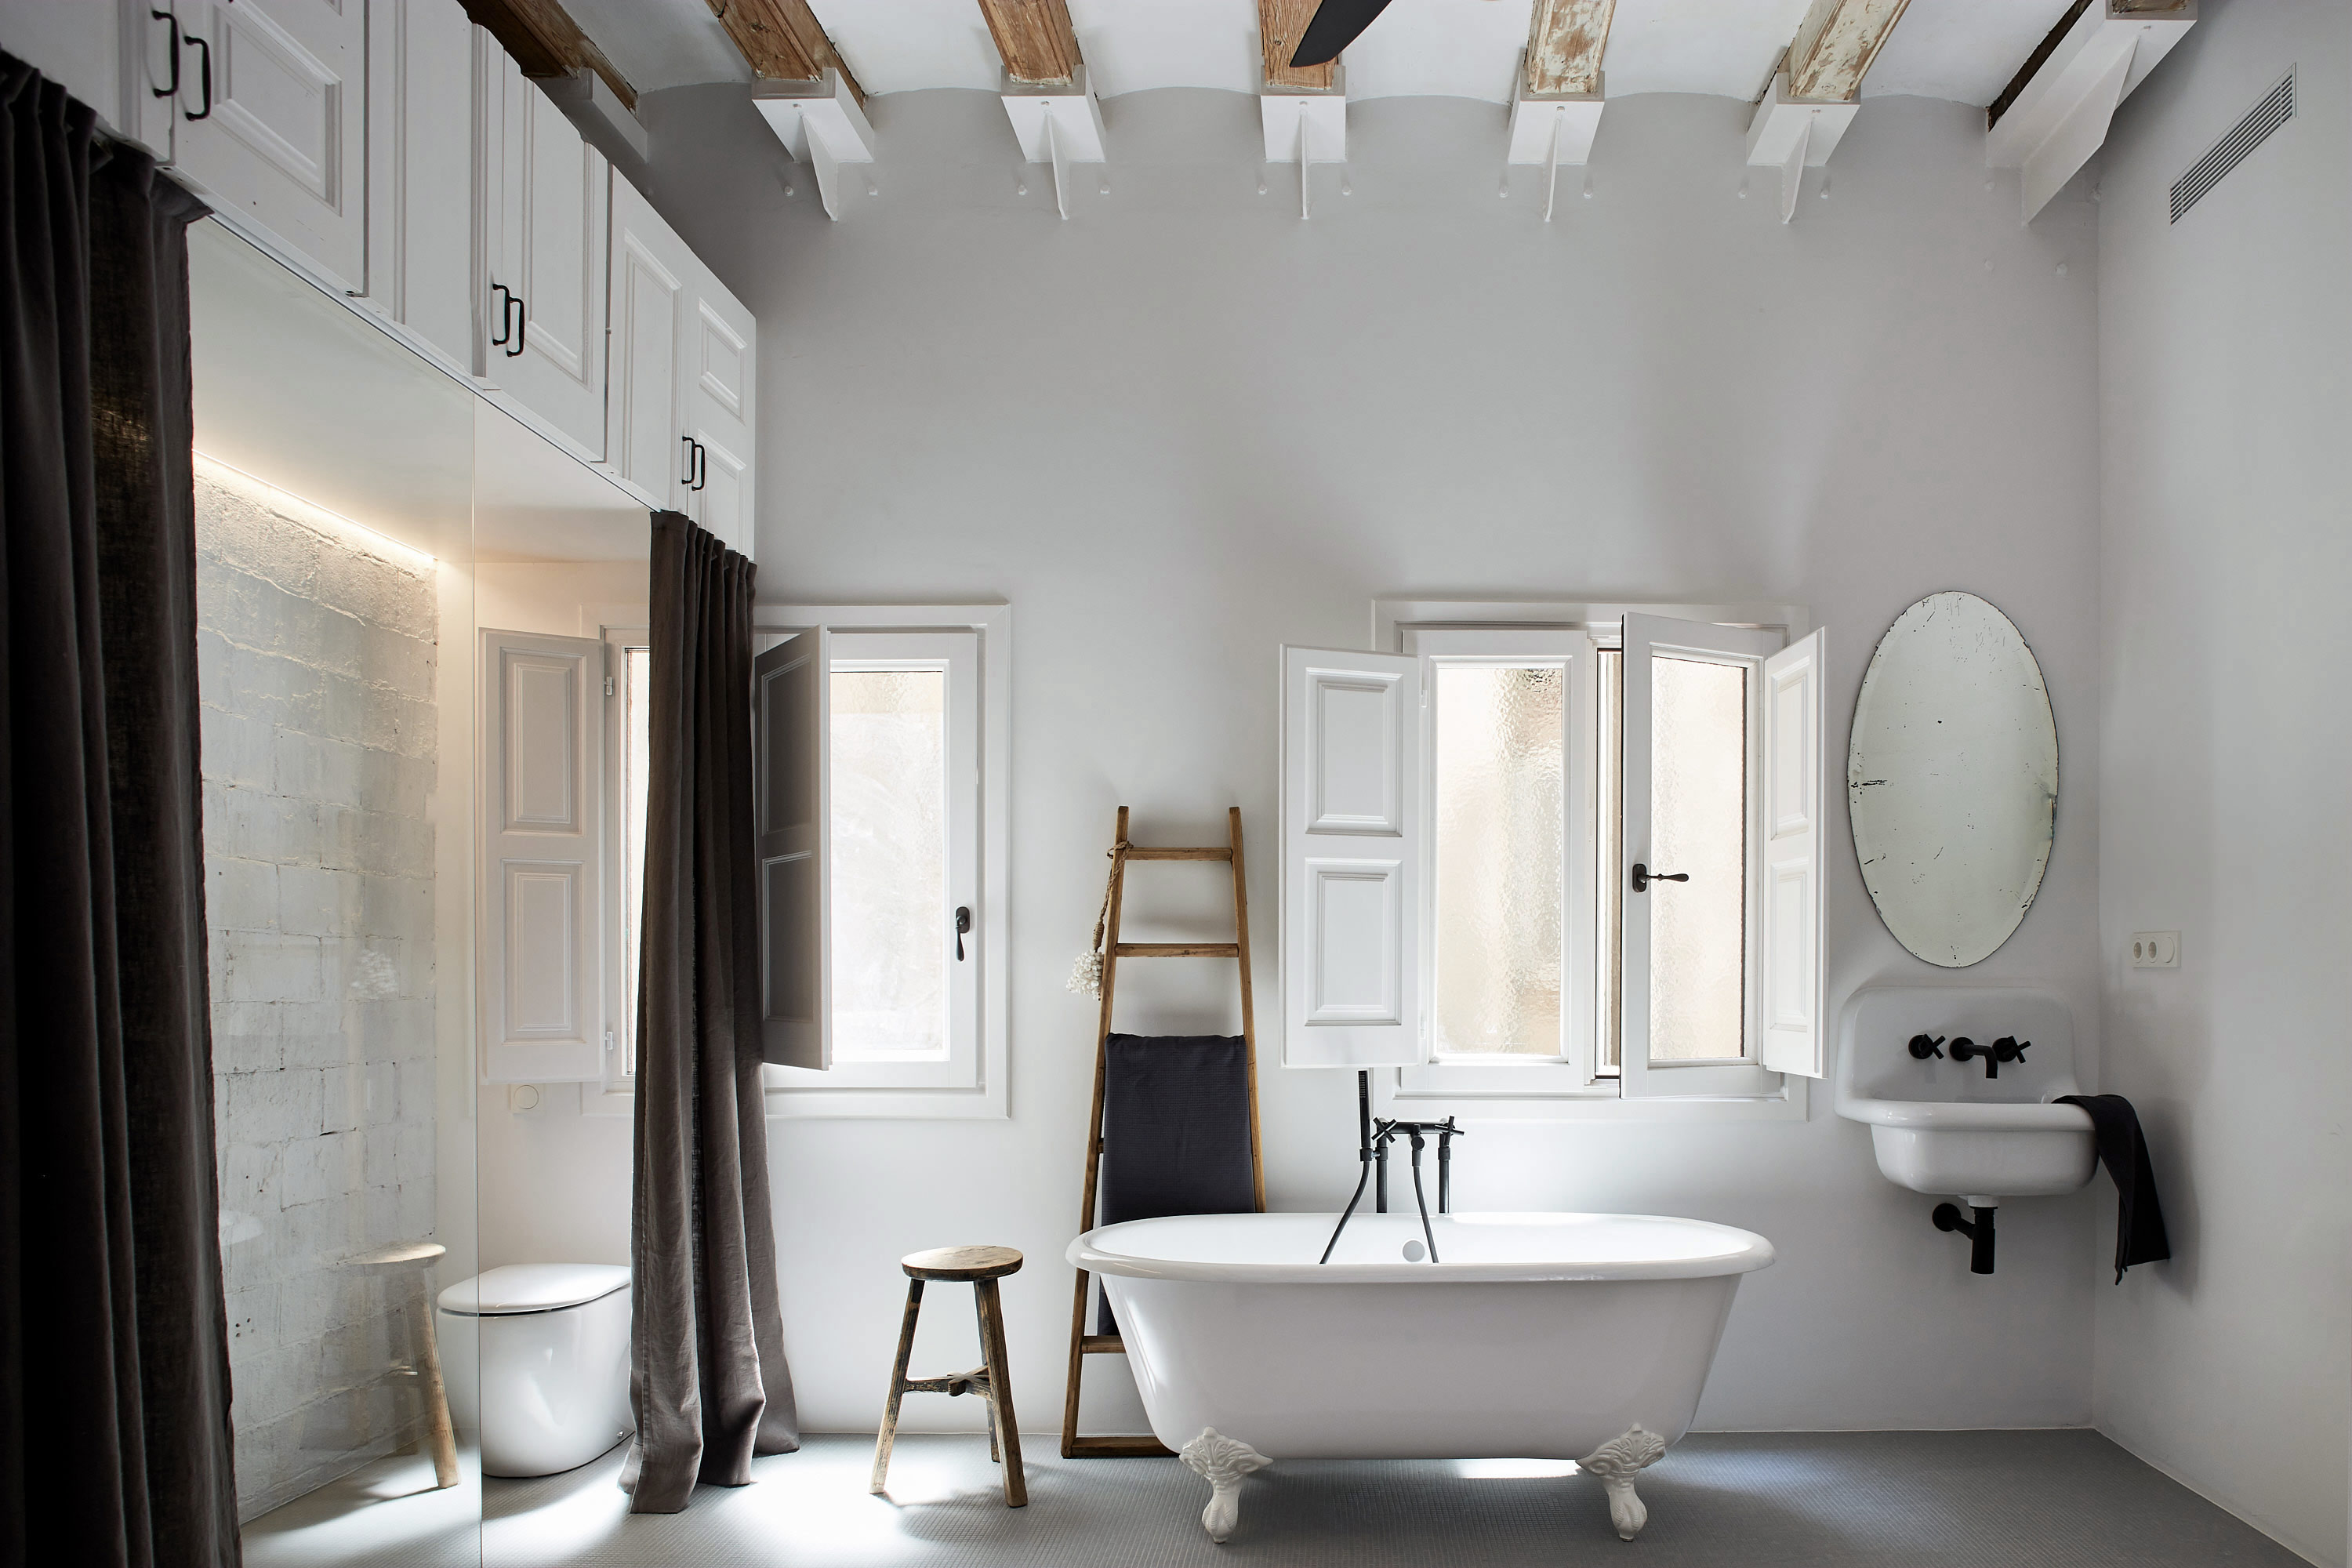 marta-castellano-mas-interiorista-barcelona-manresa-interiorisme-interiorismo-decoracion-bathroom-romantic